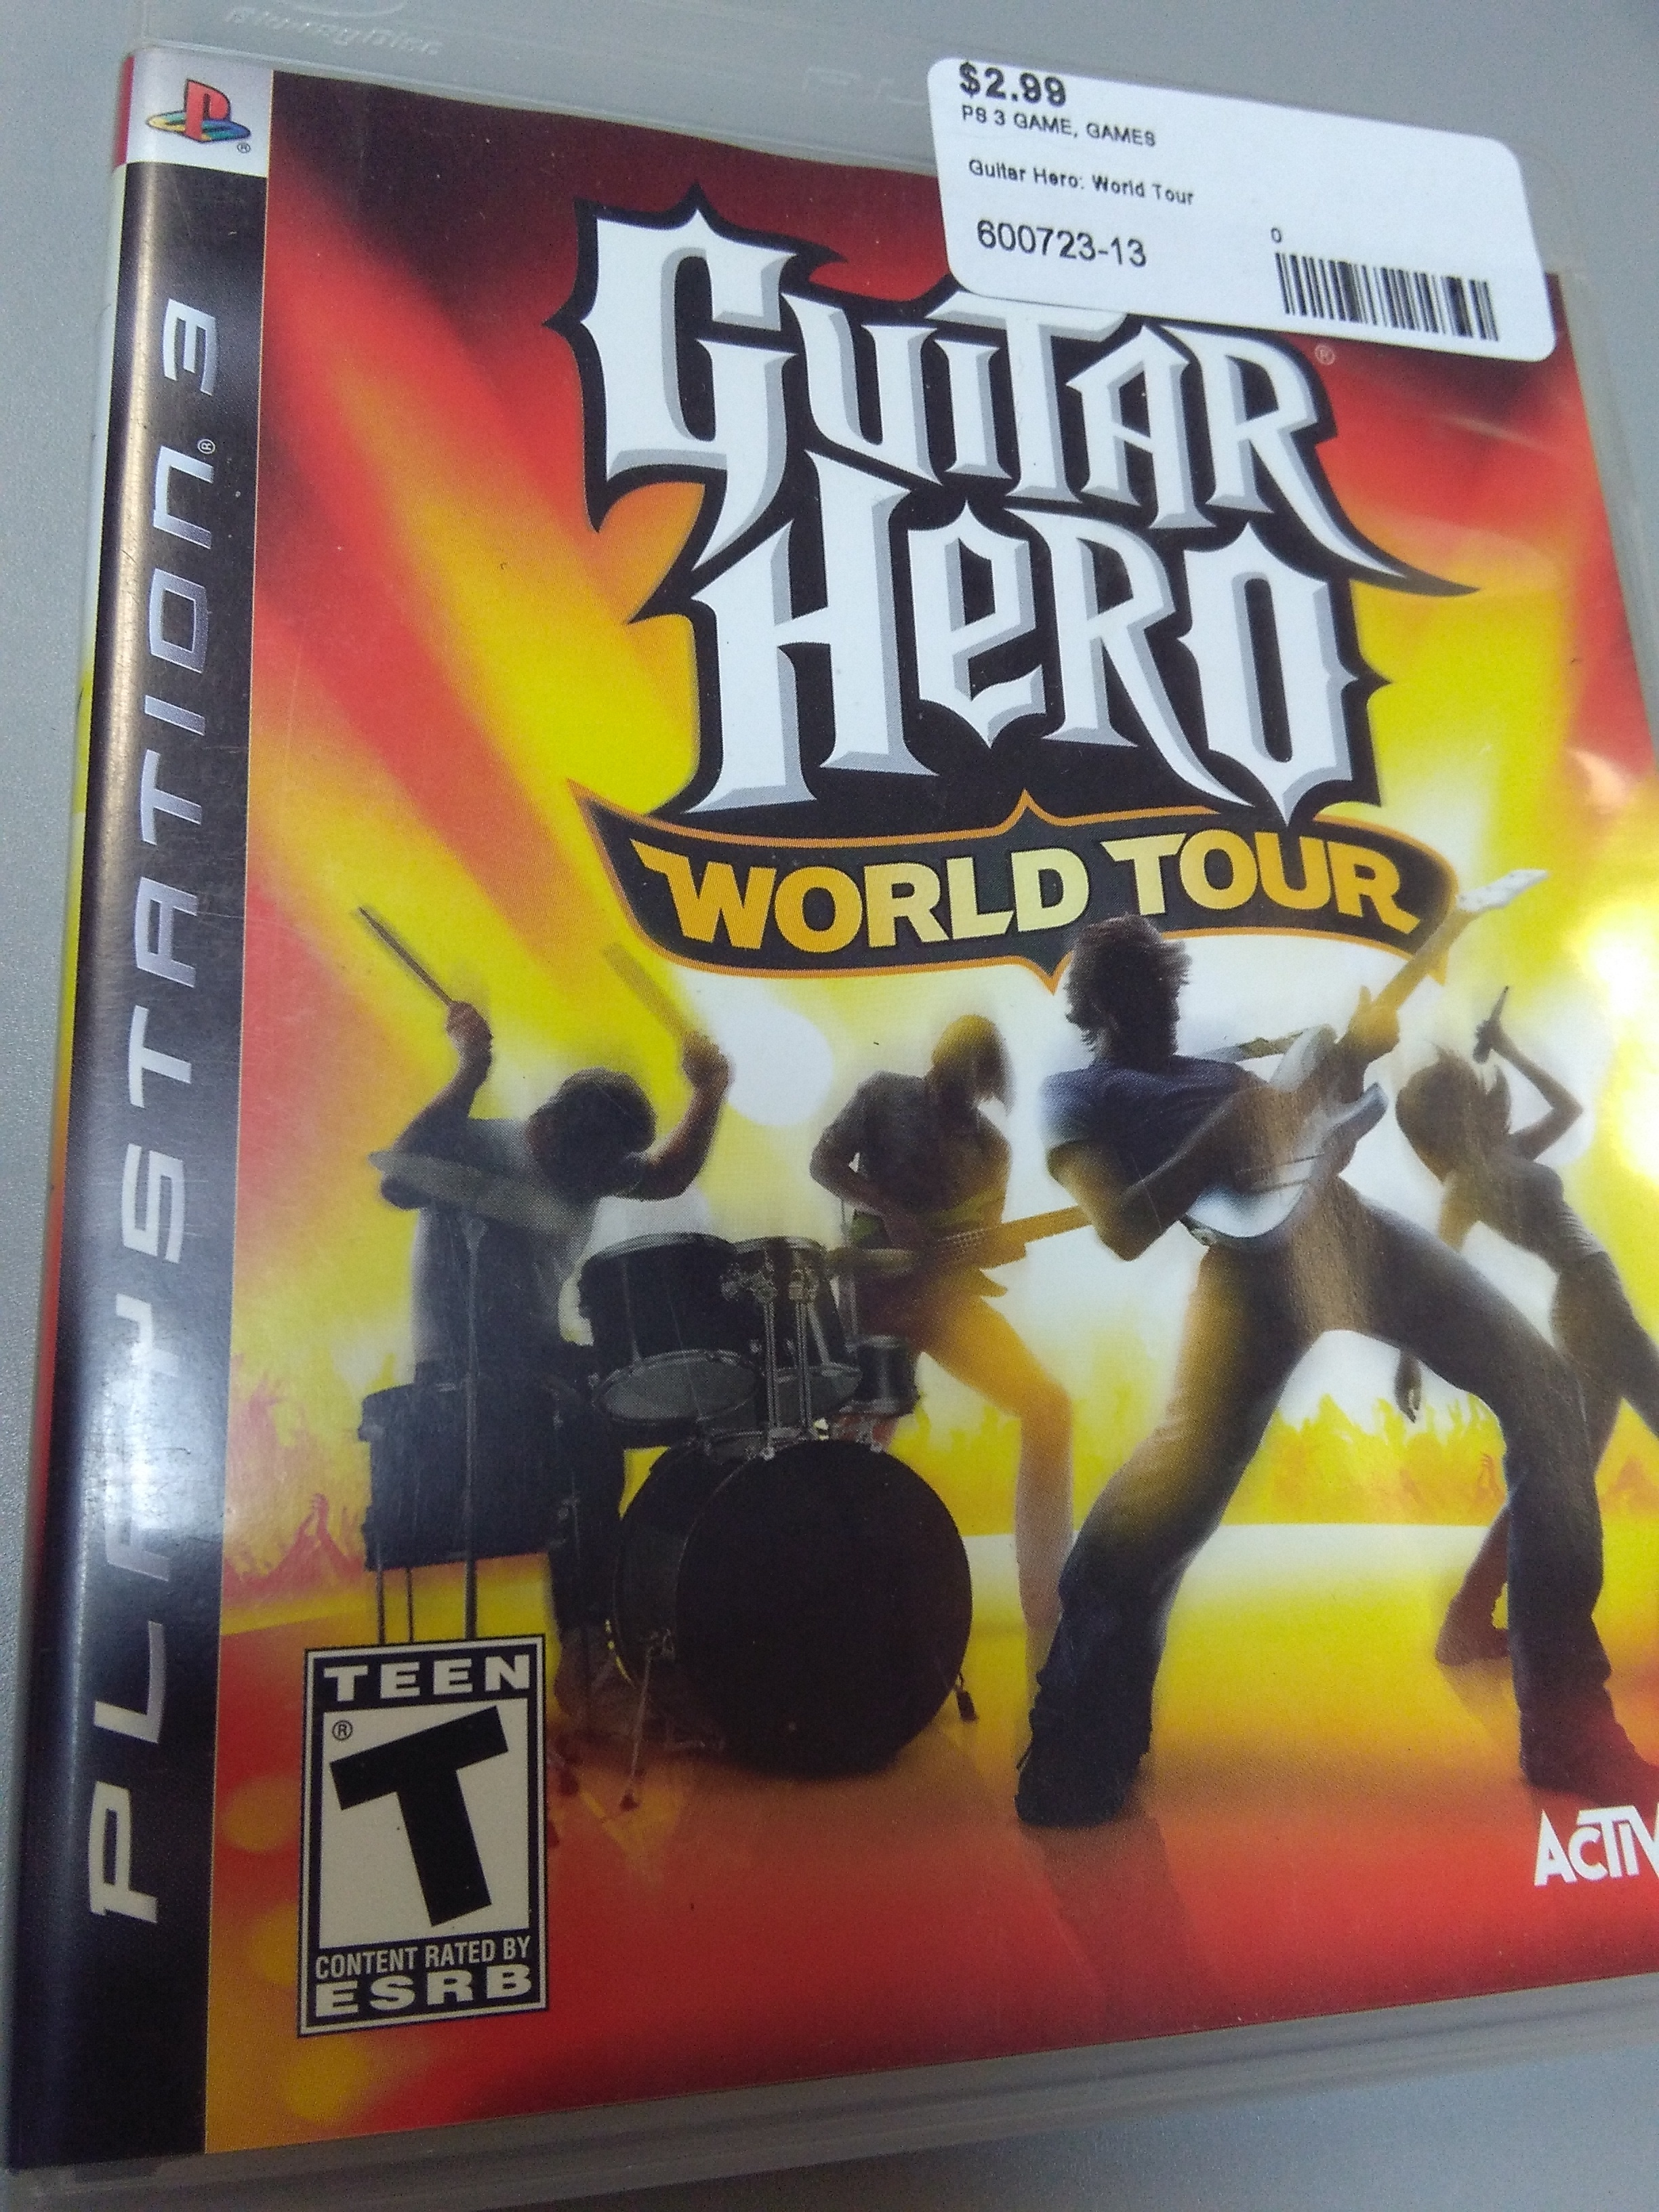 Guitar Hero: World Tour game for PS3